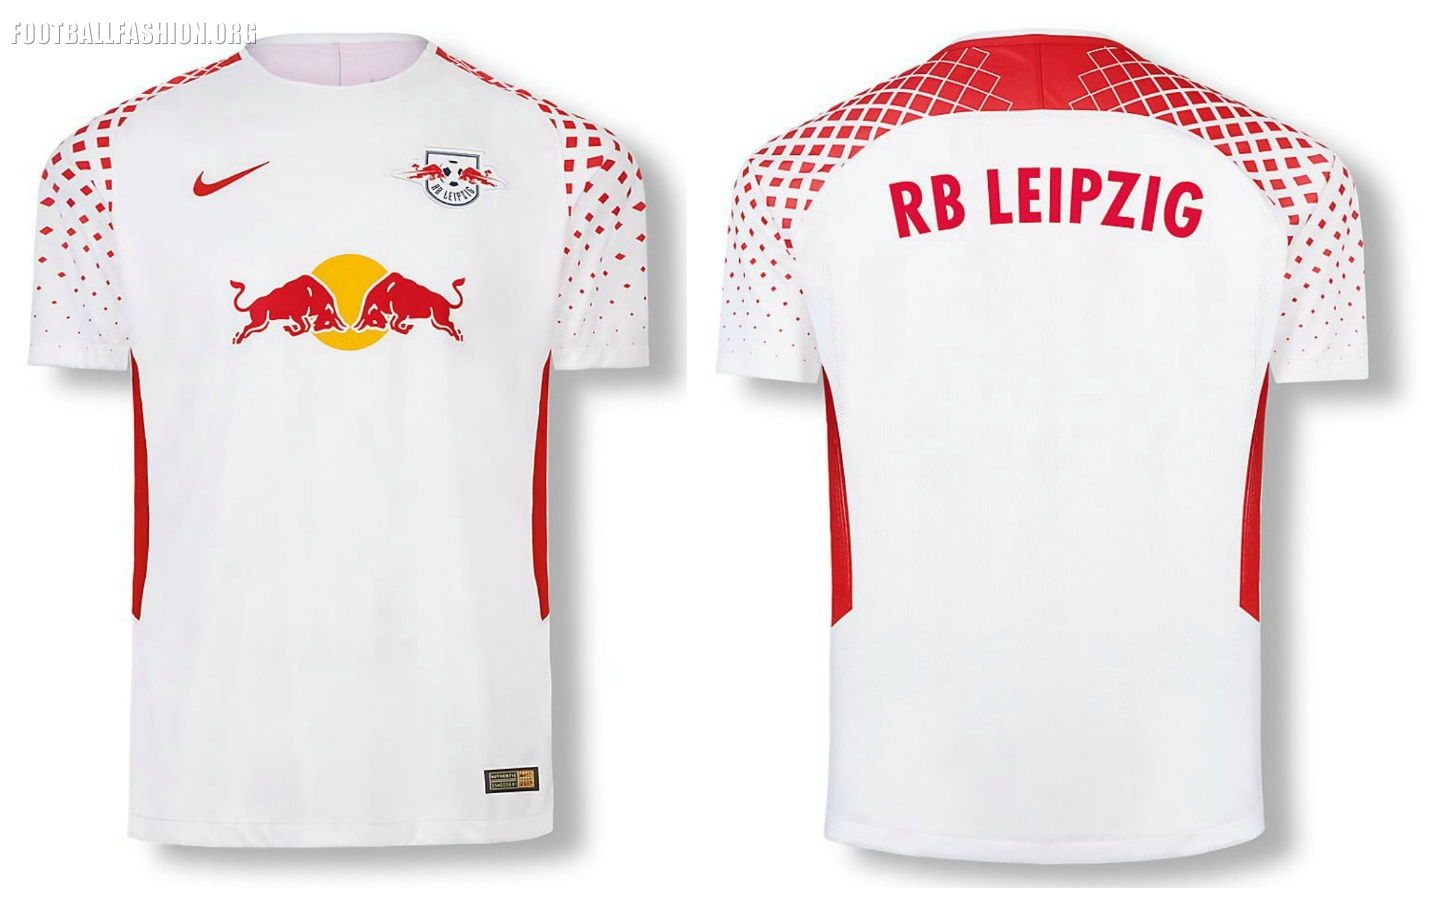 63326bf98 RB Leipzig 2017 2018 Nike Home and Away Football Kit, Soccer Jersey, Shirt.